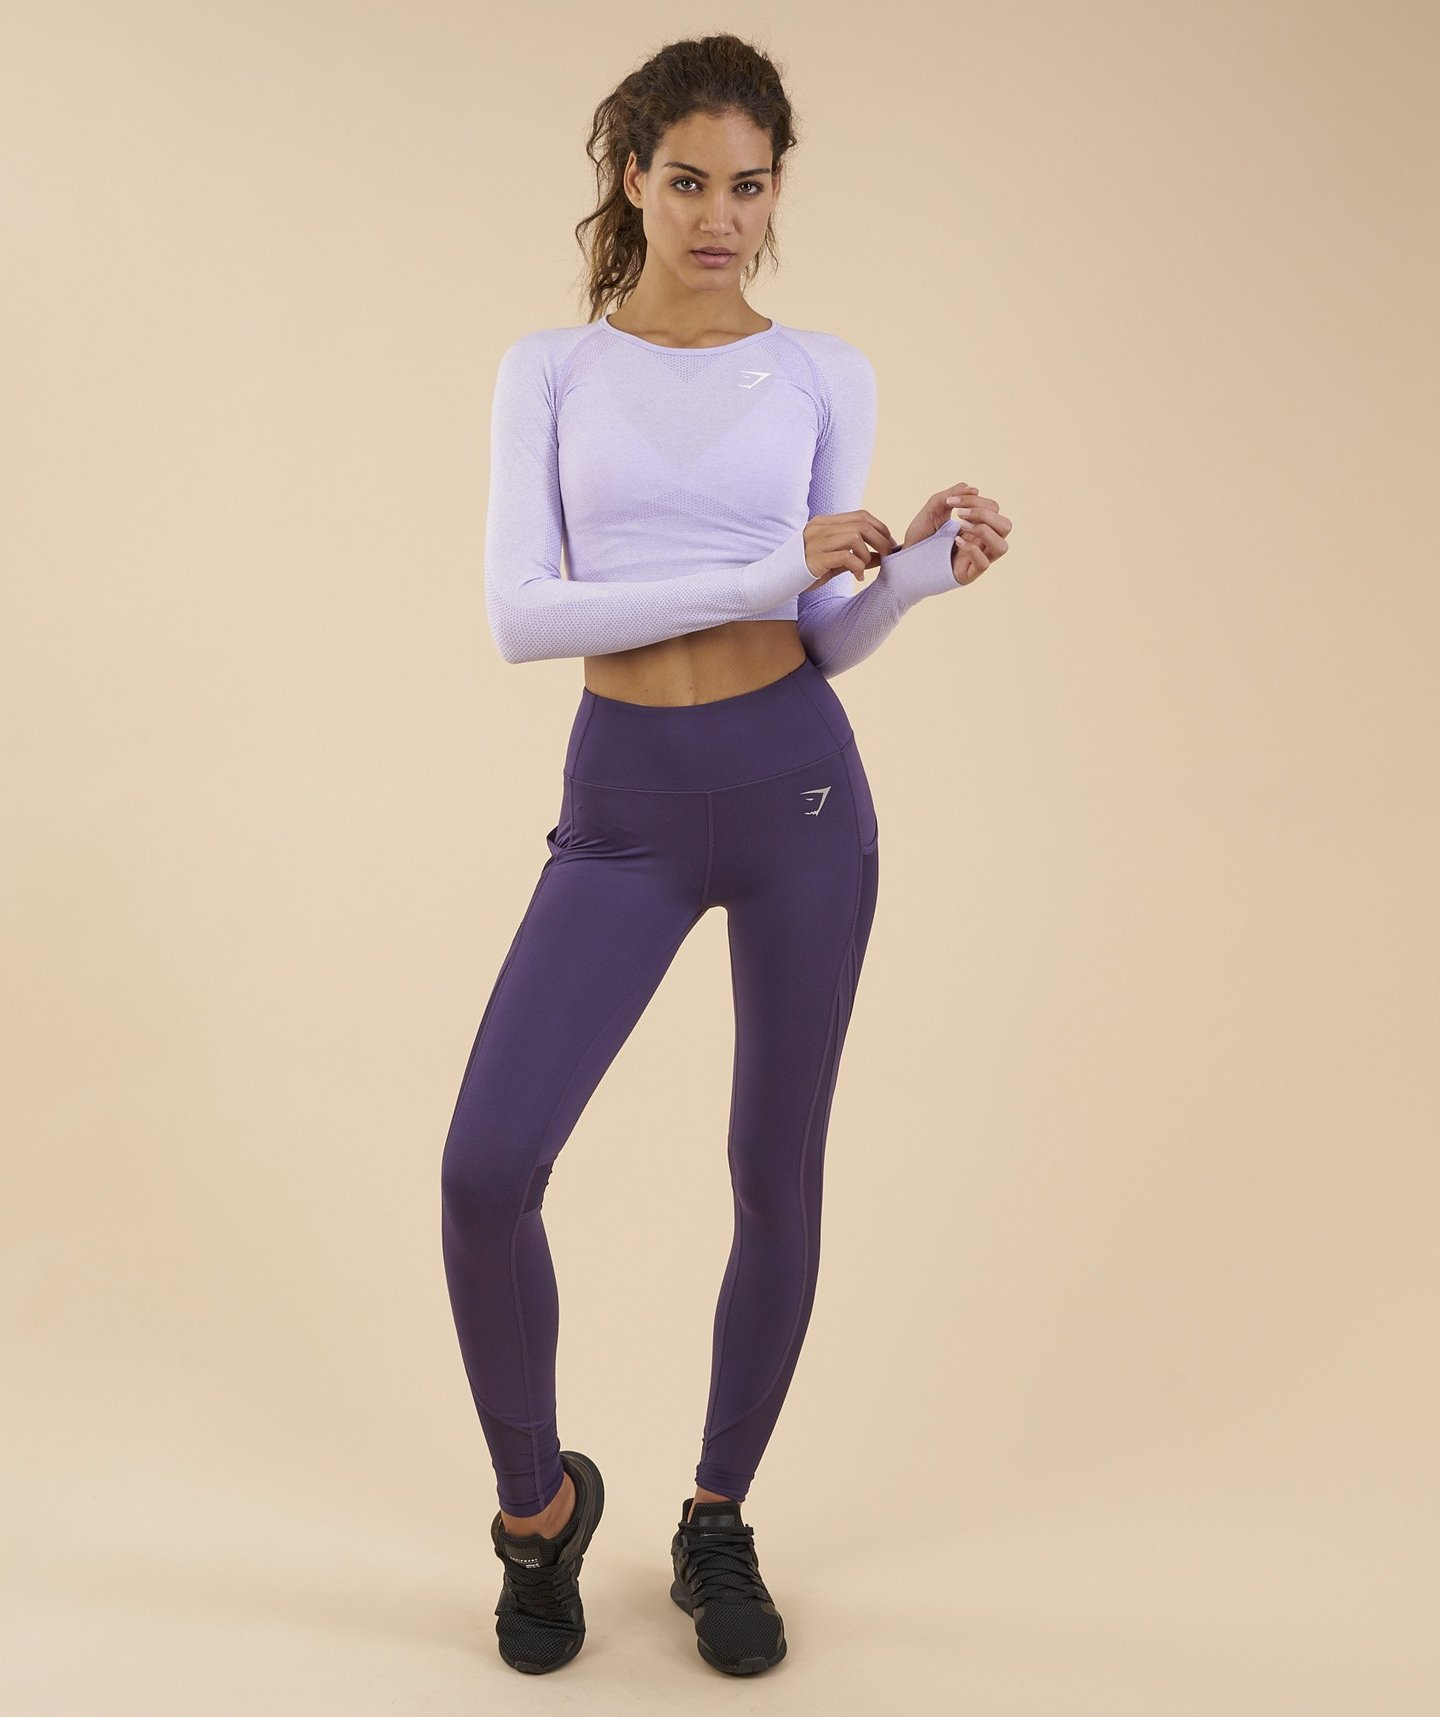 Brand new Gymshark Sleek Sculpture Leggings - Rich Purple